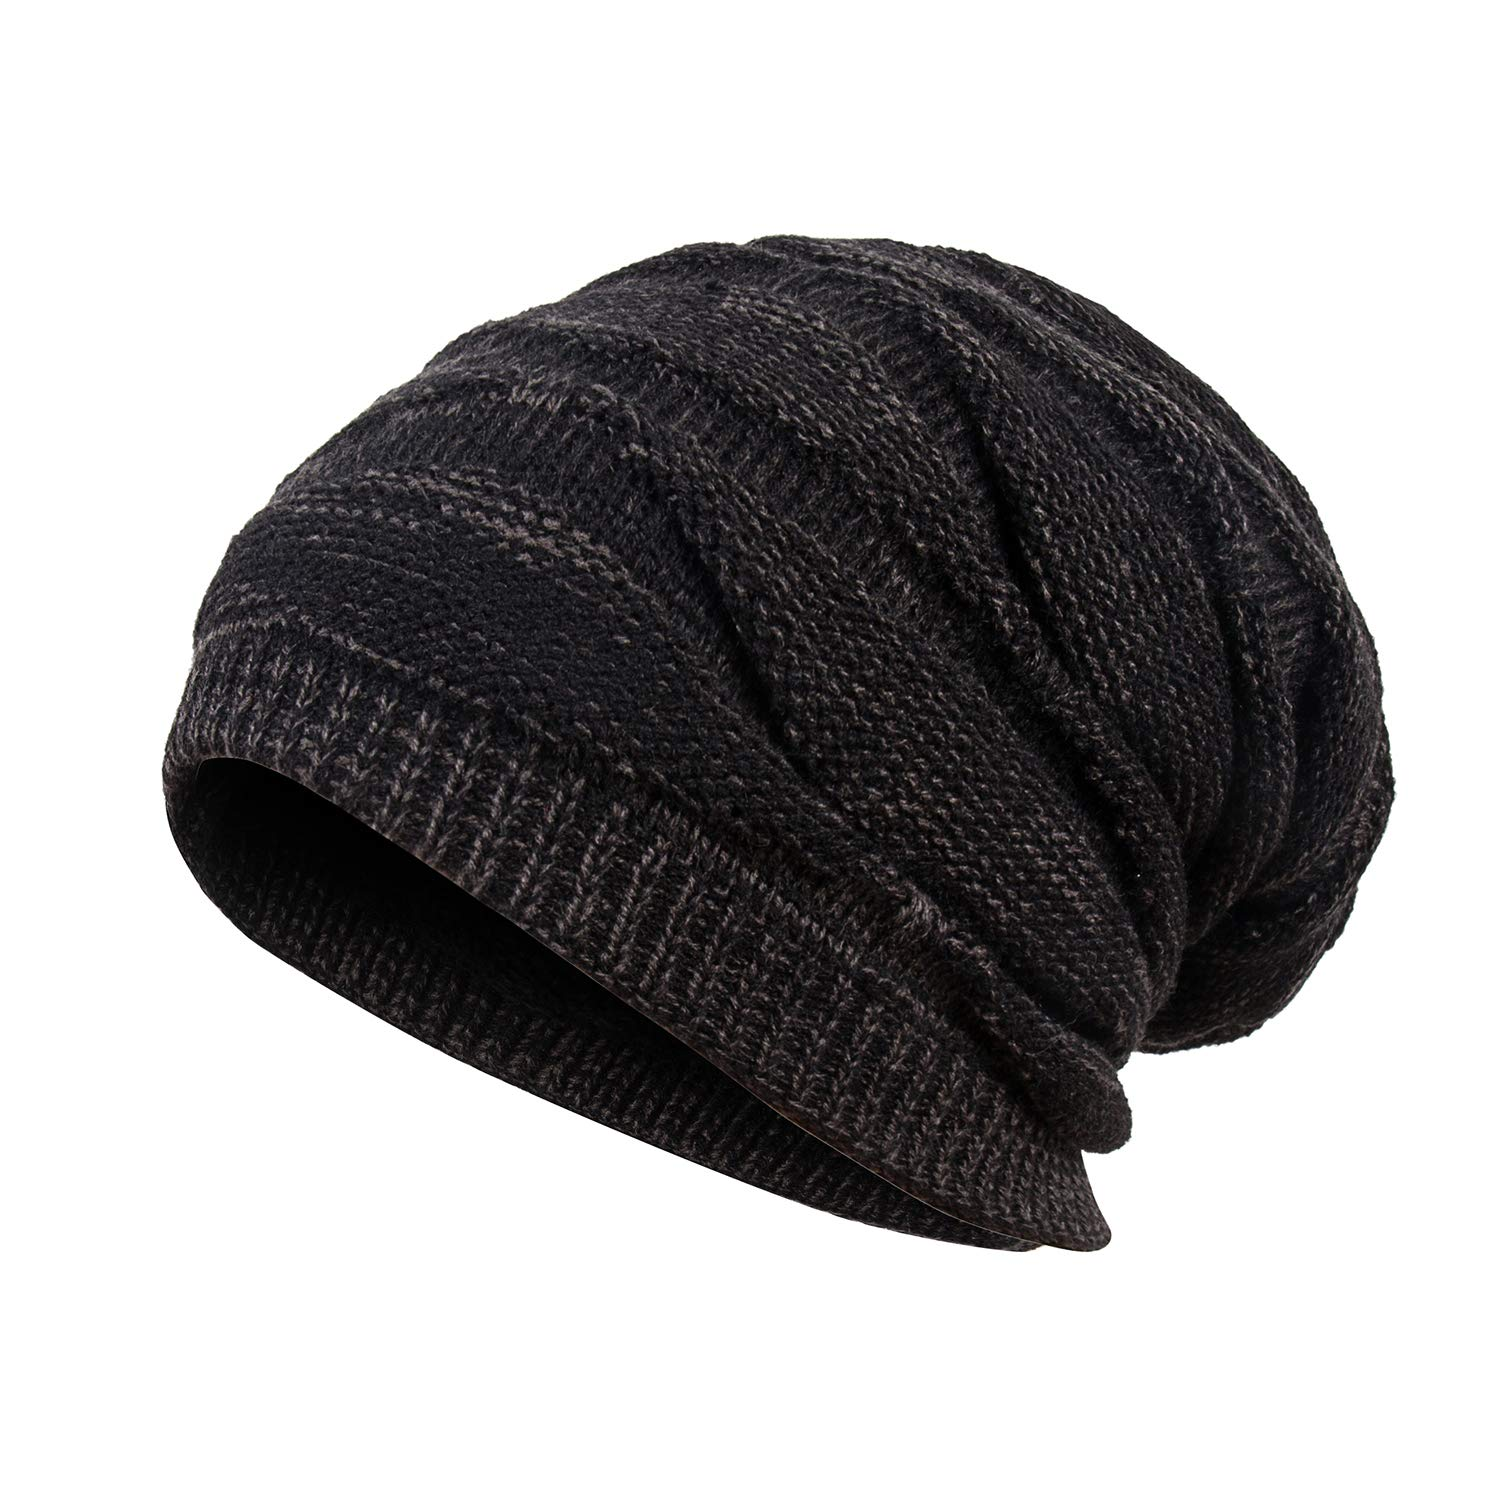 8b75961c8 Mens Winter Plus Velvet Warm Knitting Hats Wool Baggy Slouchy Beanie Hat  Skull Cap Ski Cap